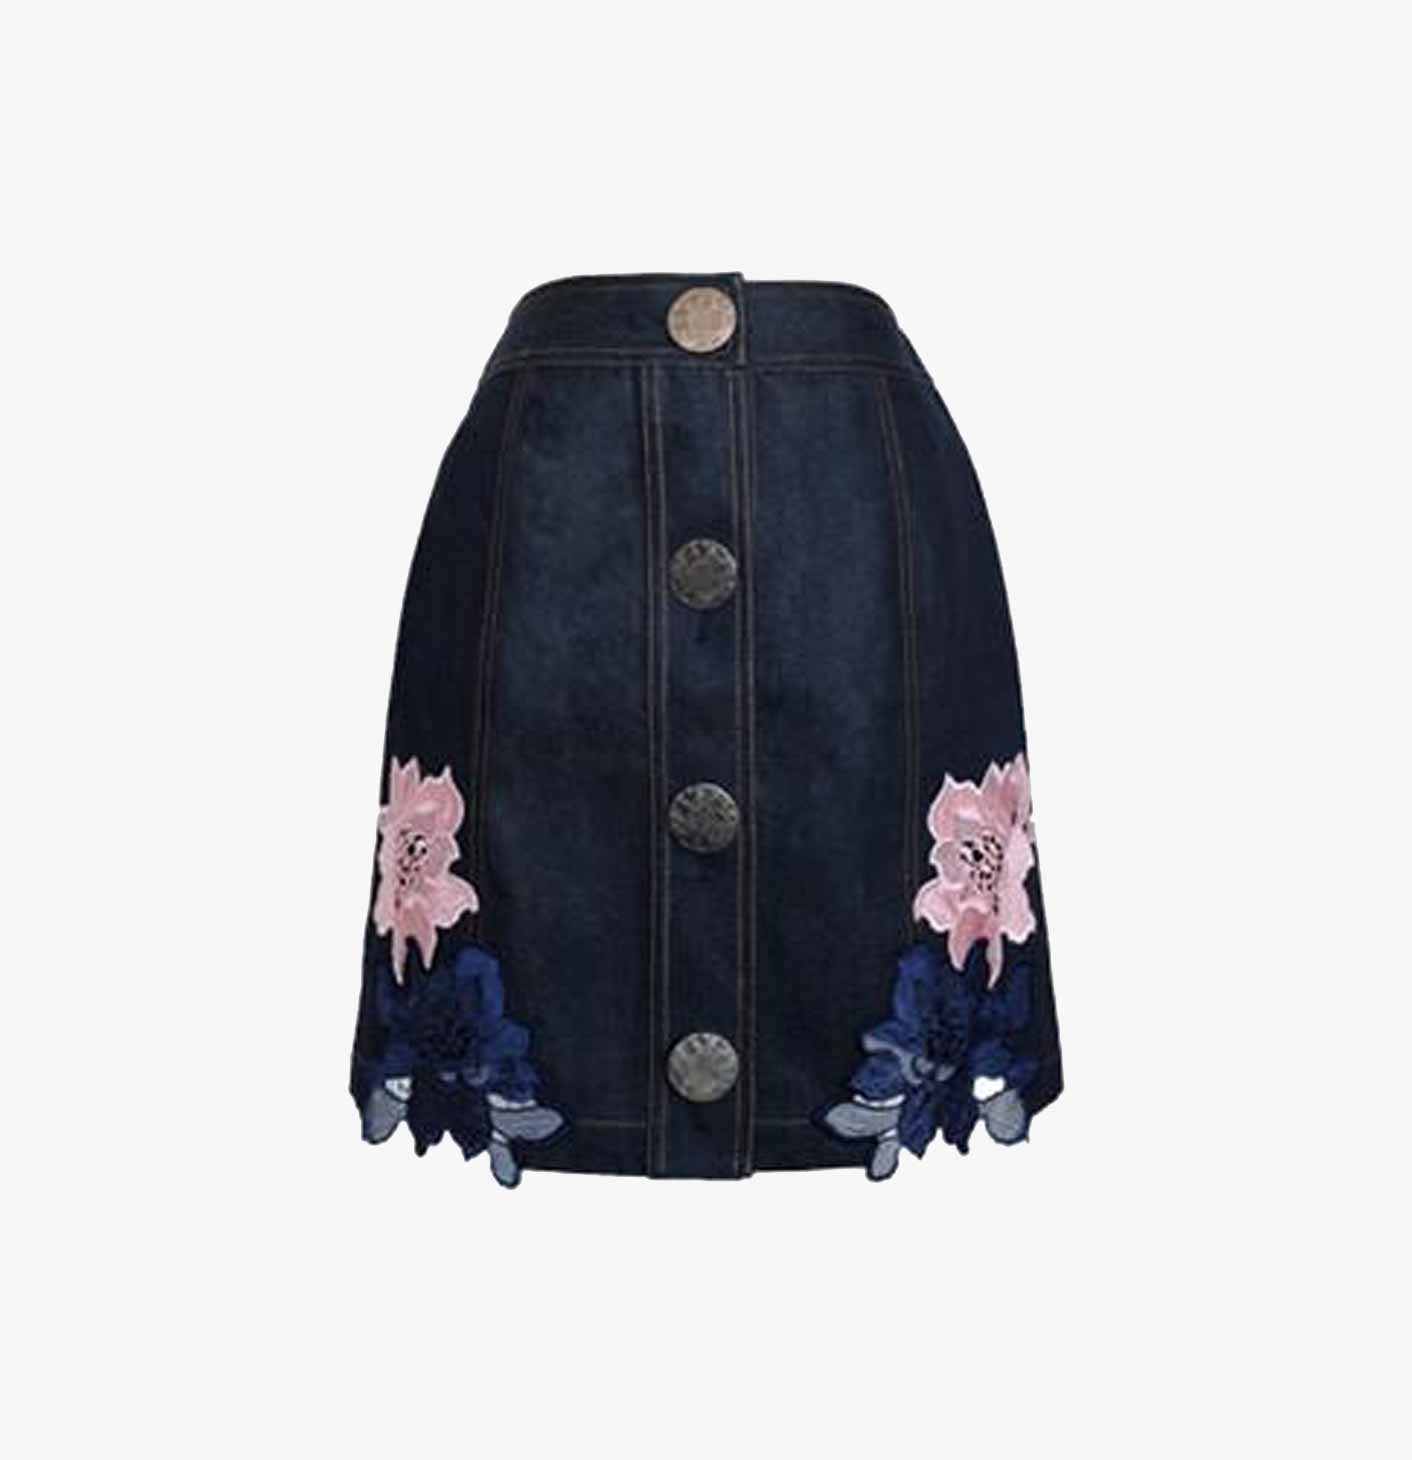 DENIM SKIRT WITH LACE APPLIQUE